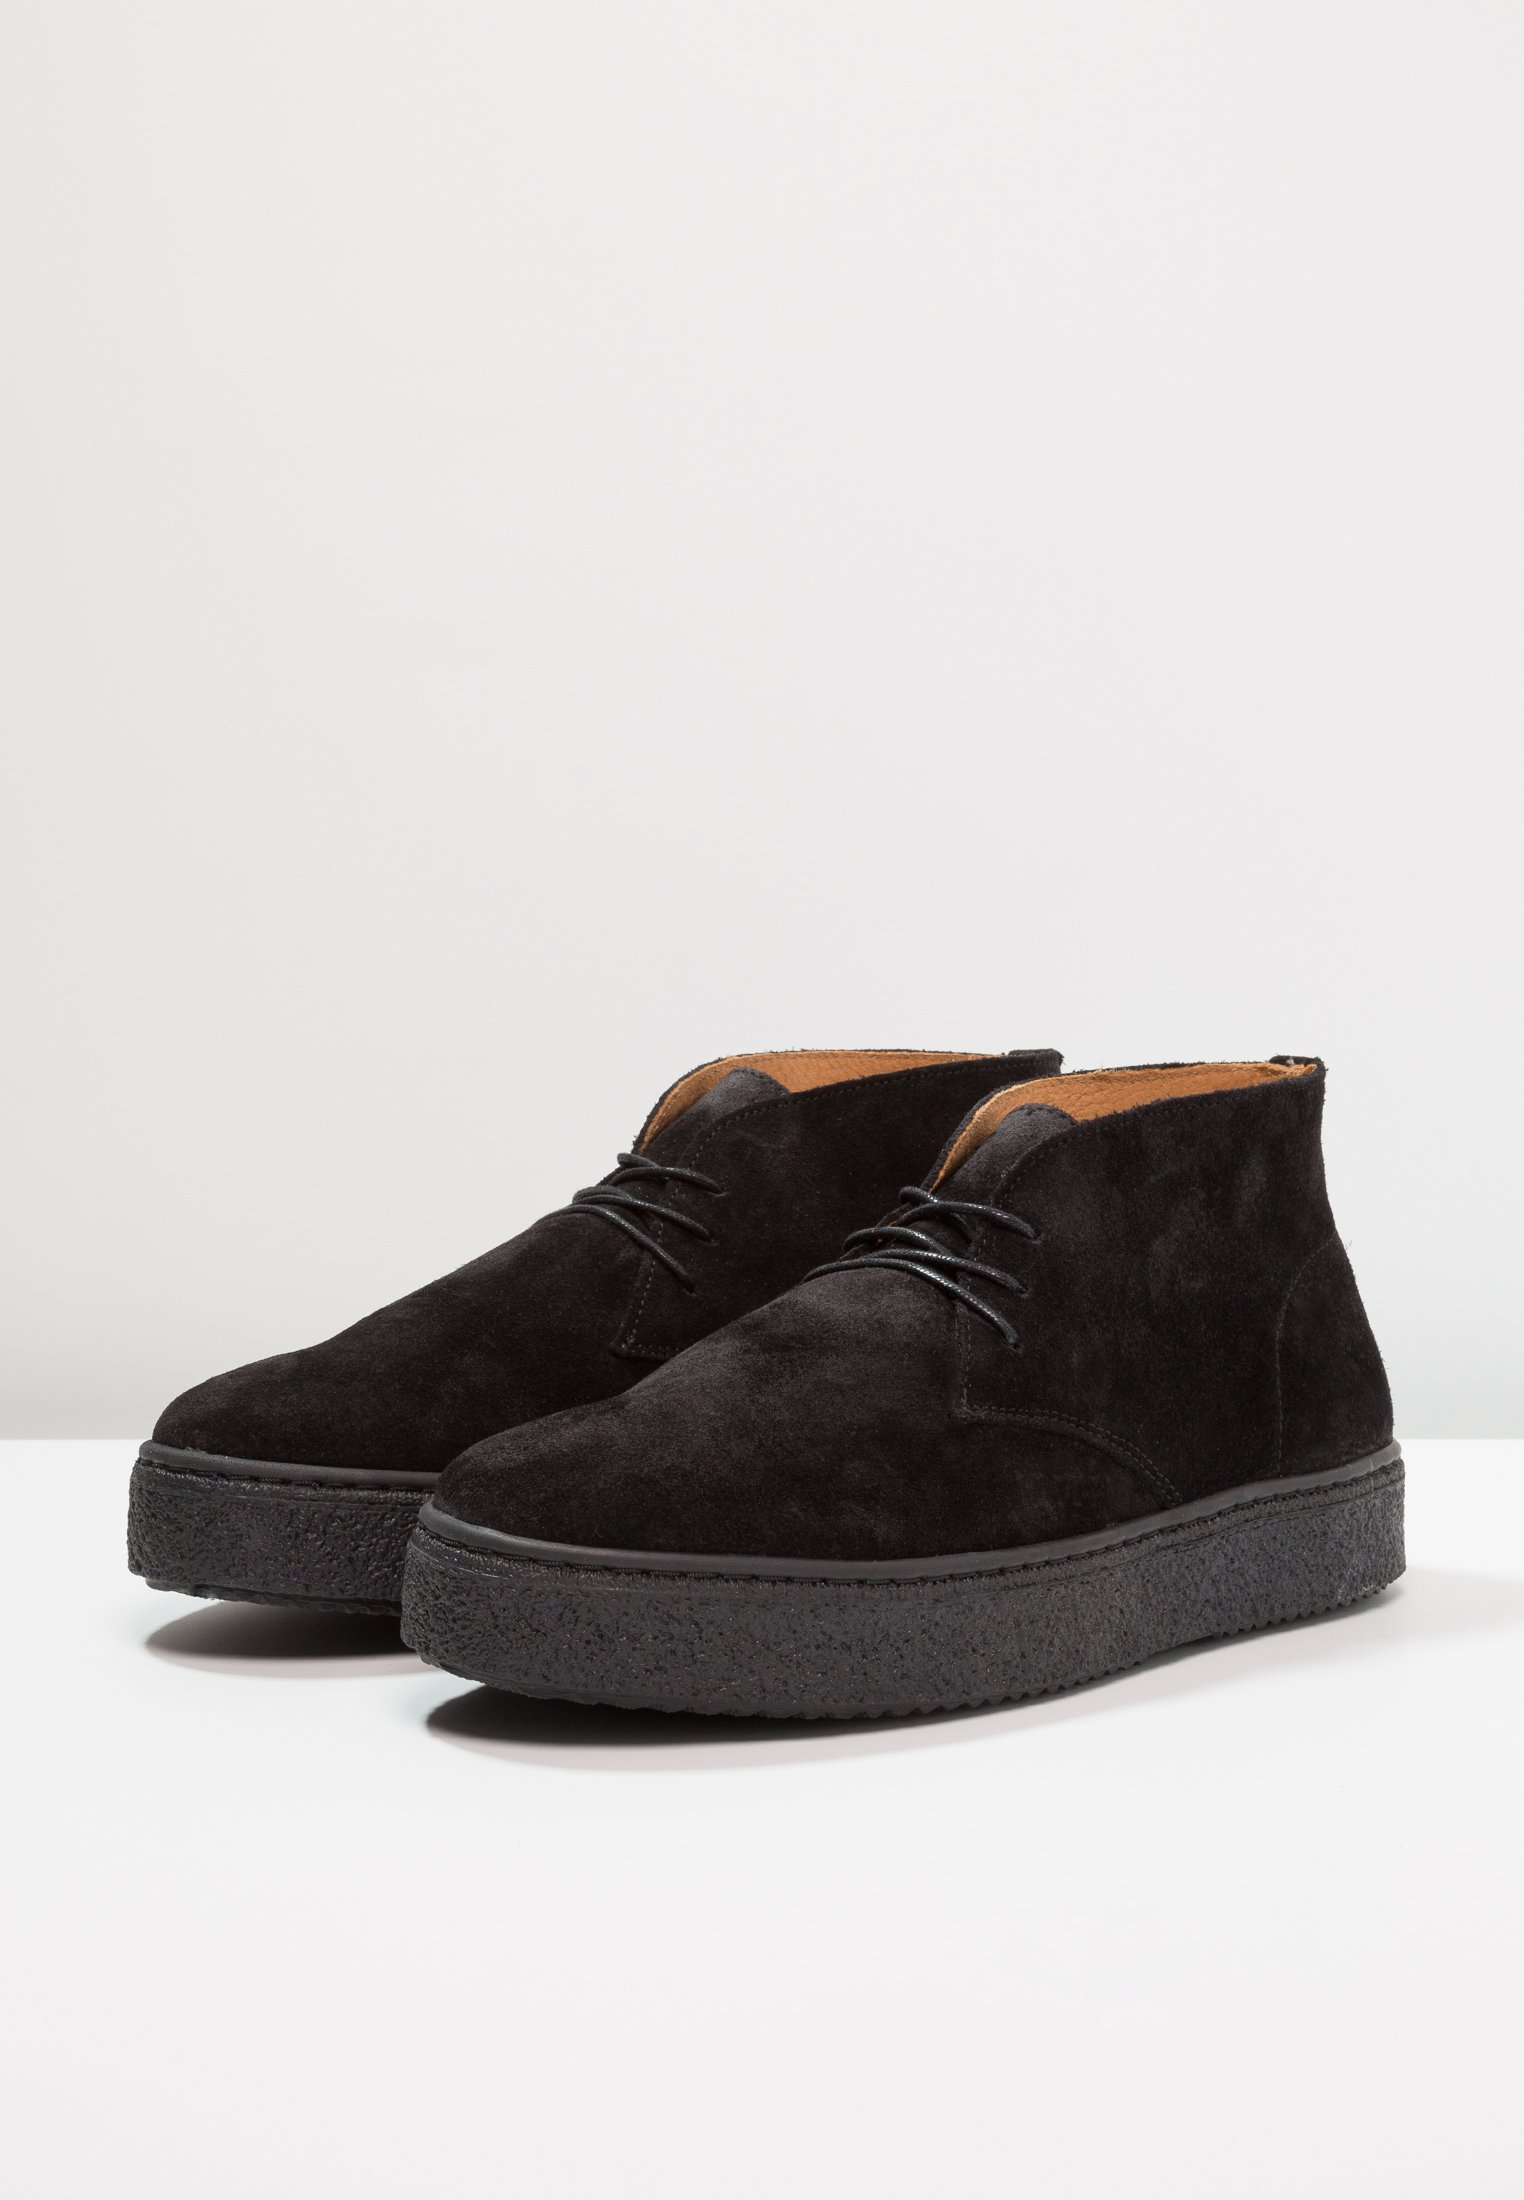 Zign Chaussures Zign Chaussures LacetsBlack À Yb76Igfyv